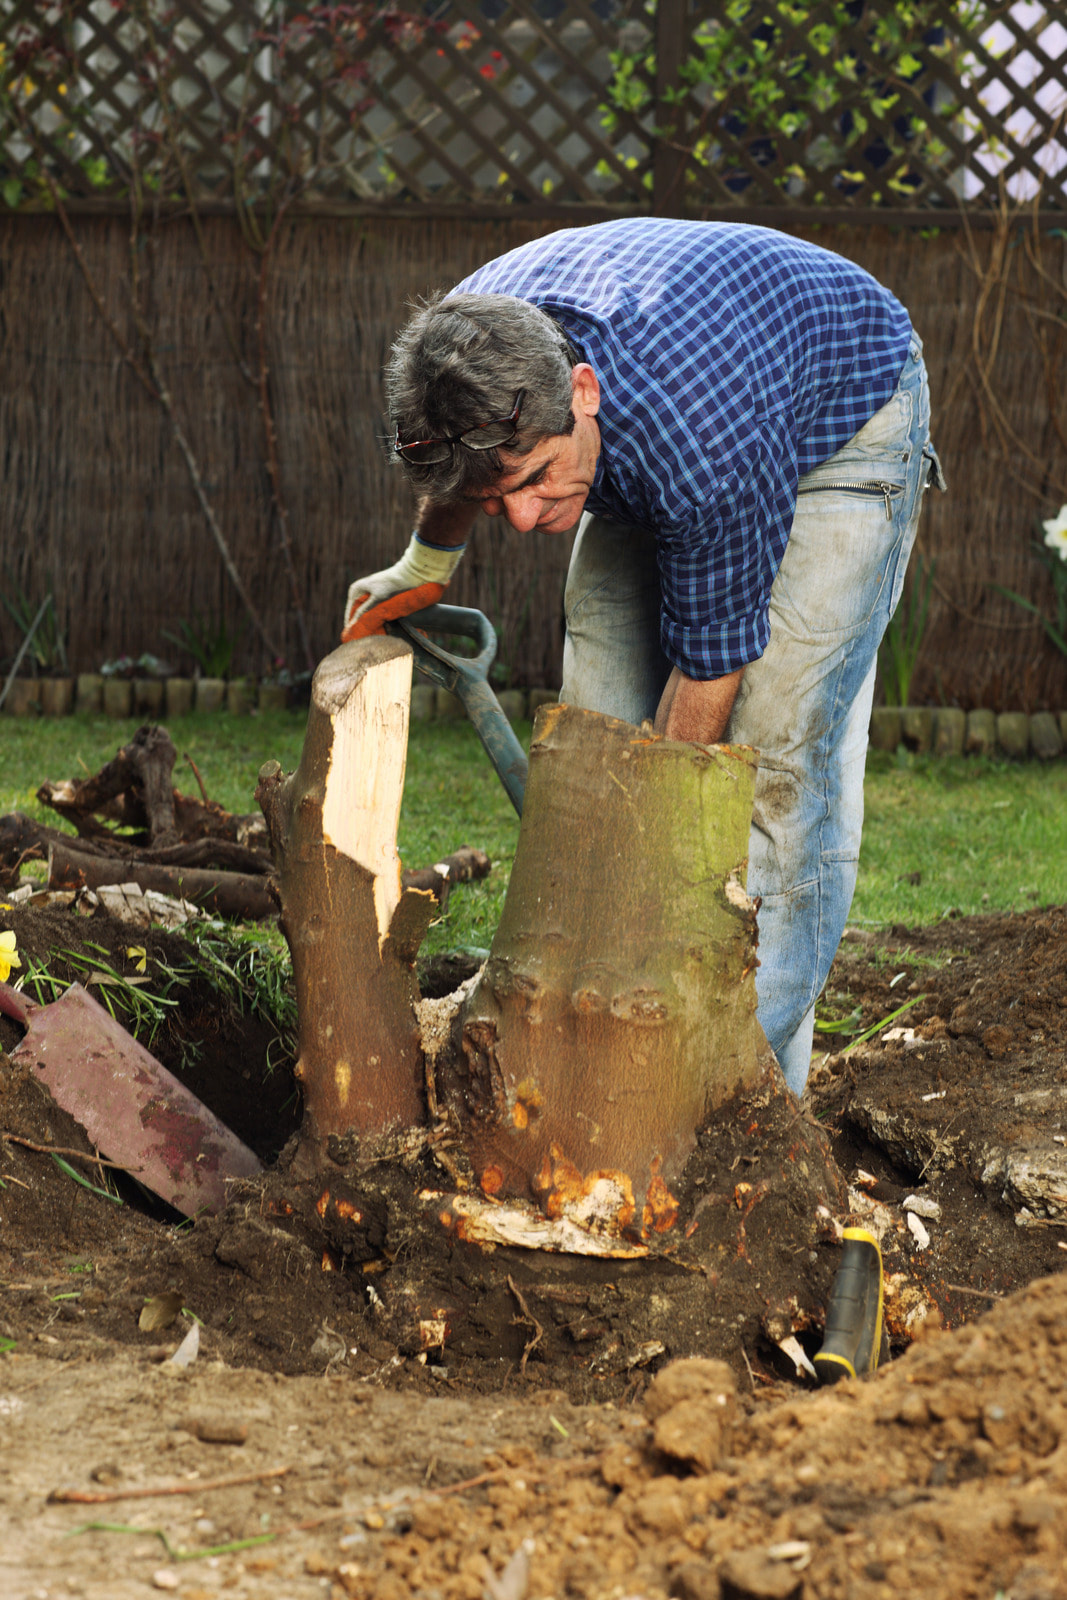 Man bent over a tree stump, trying to remove it on his own with a shovel.